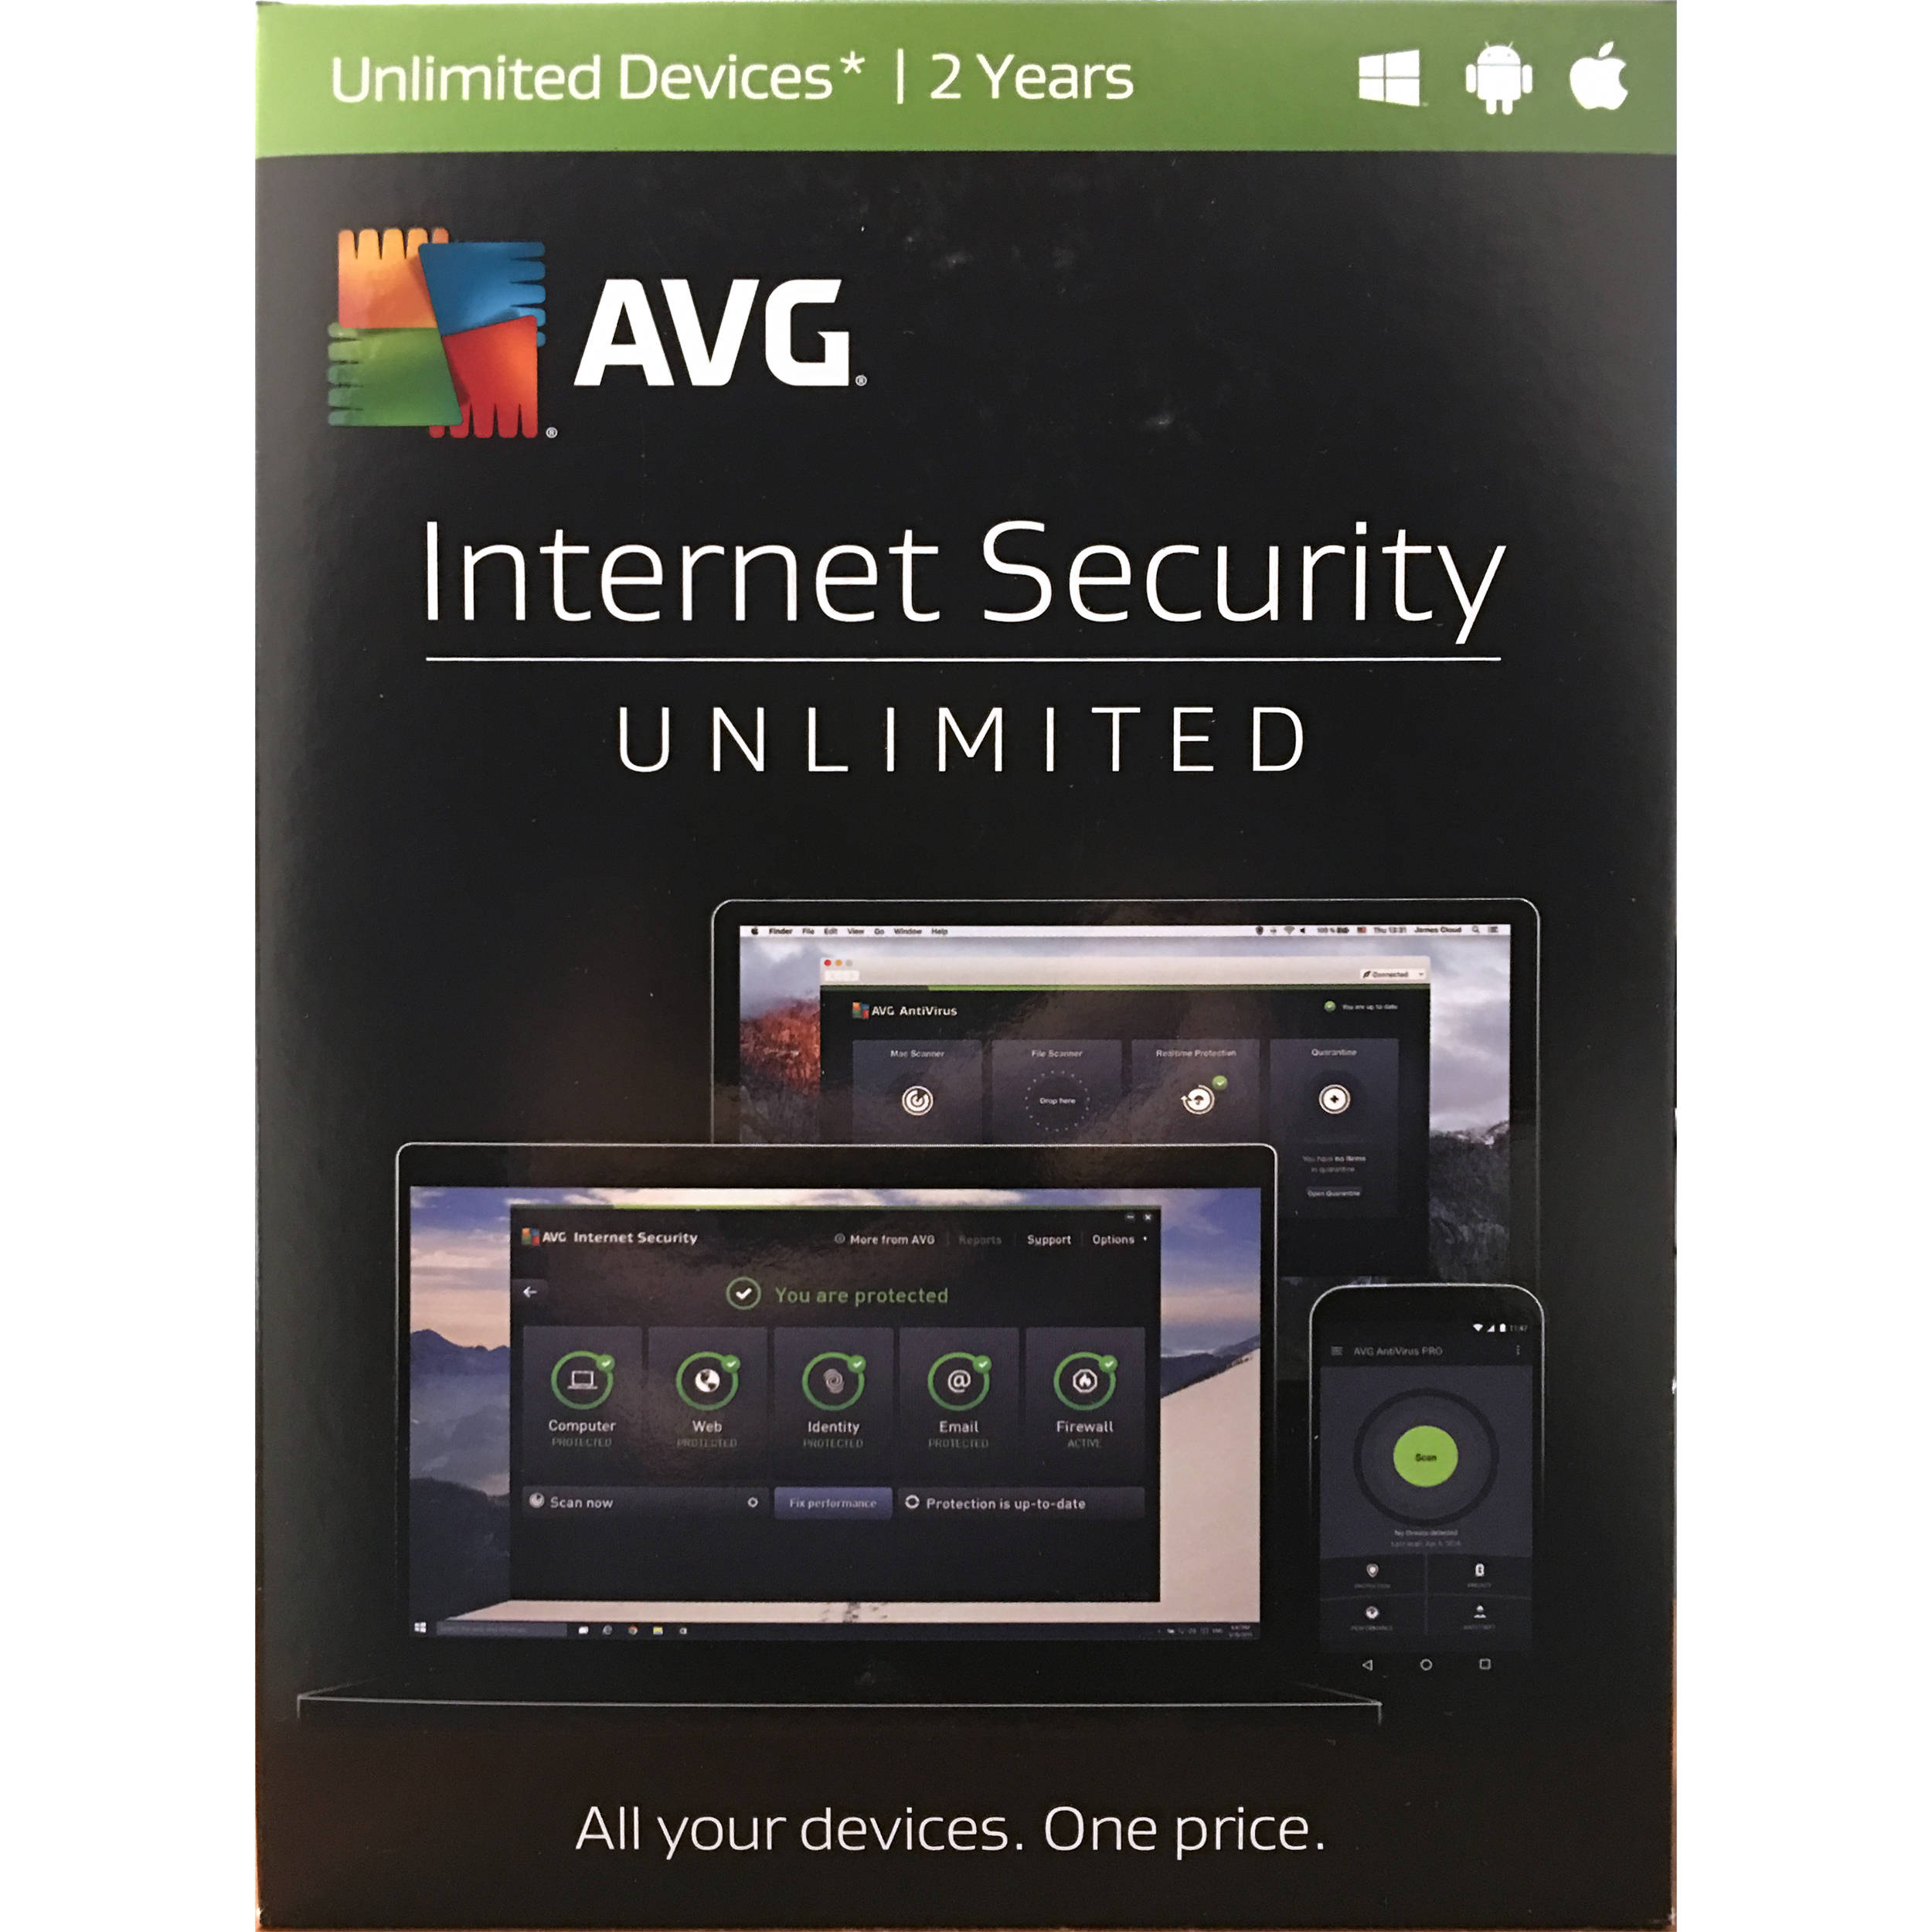 avg internet security you are not protected